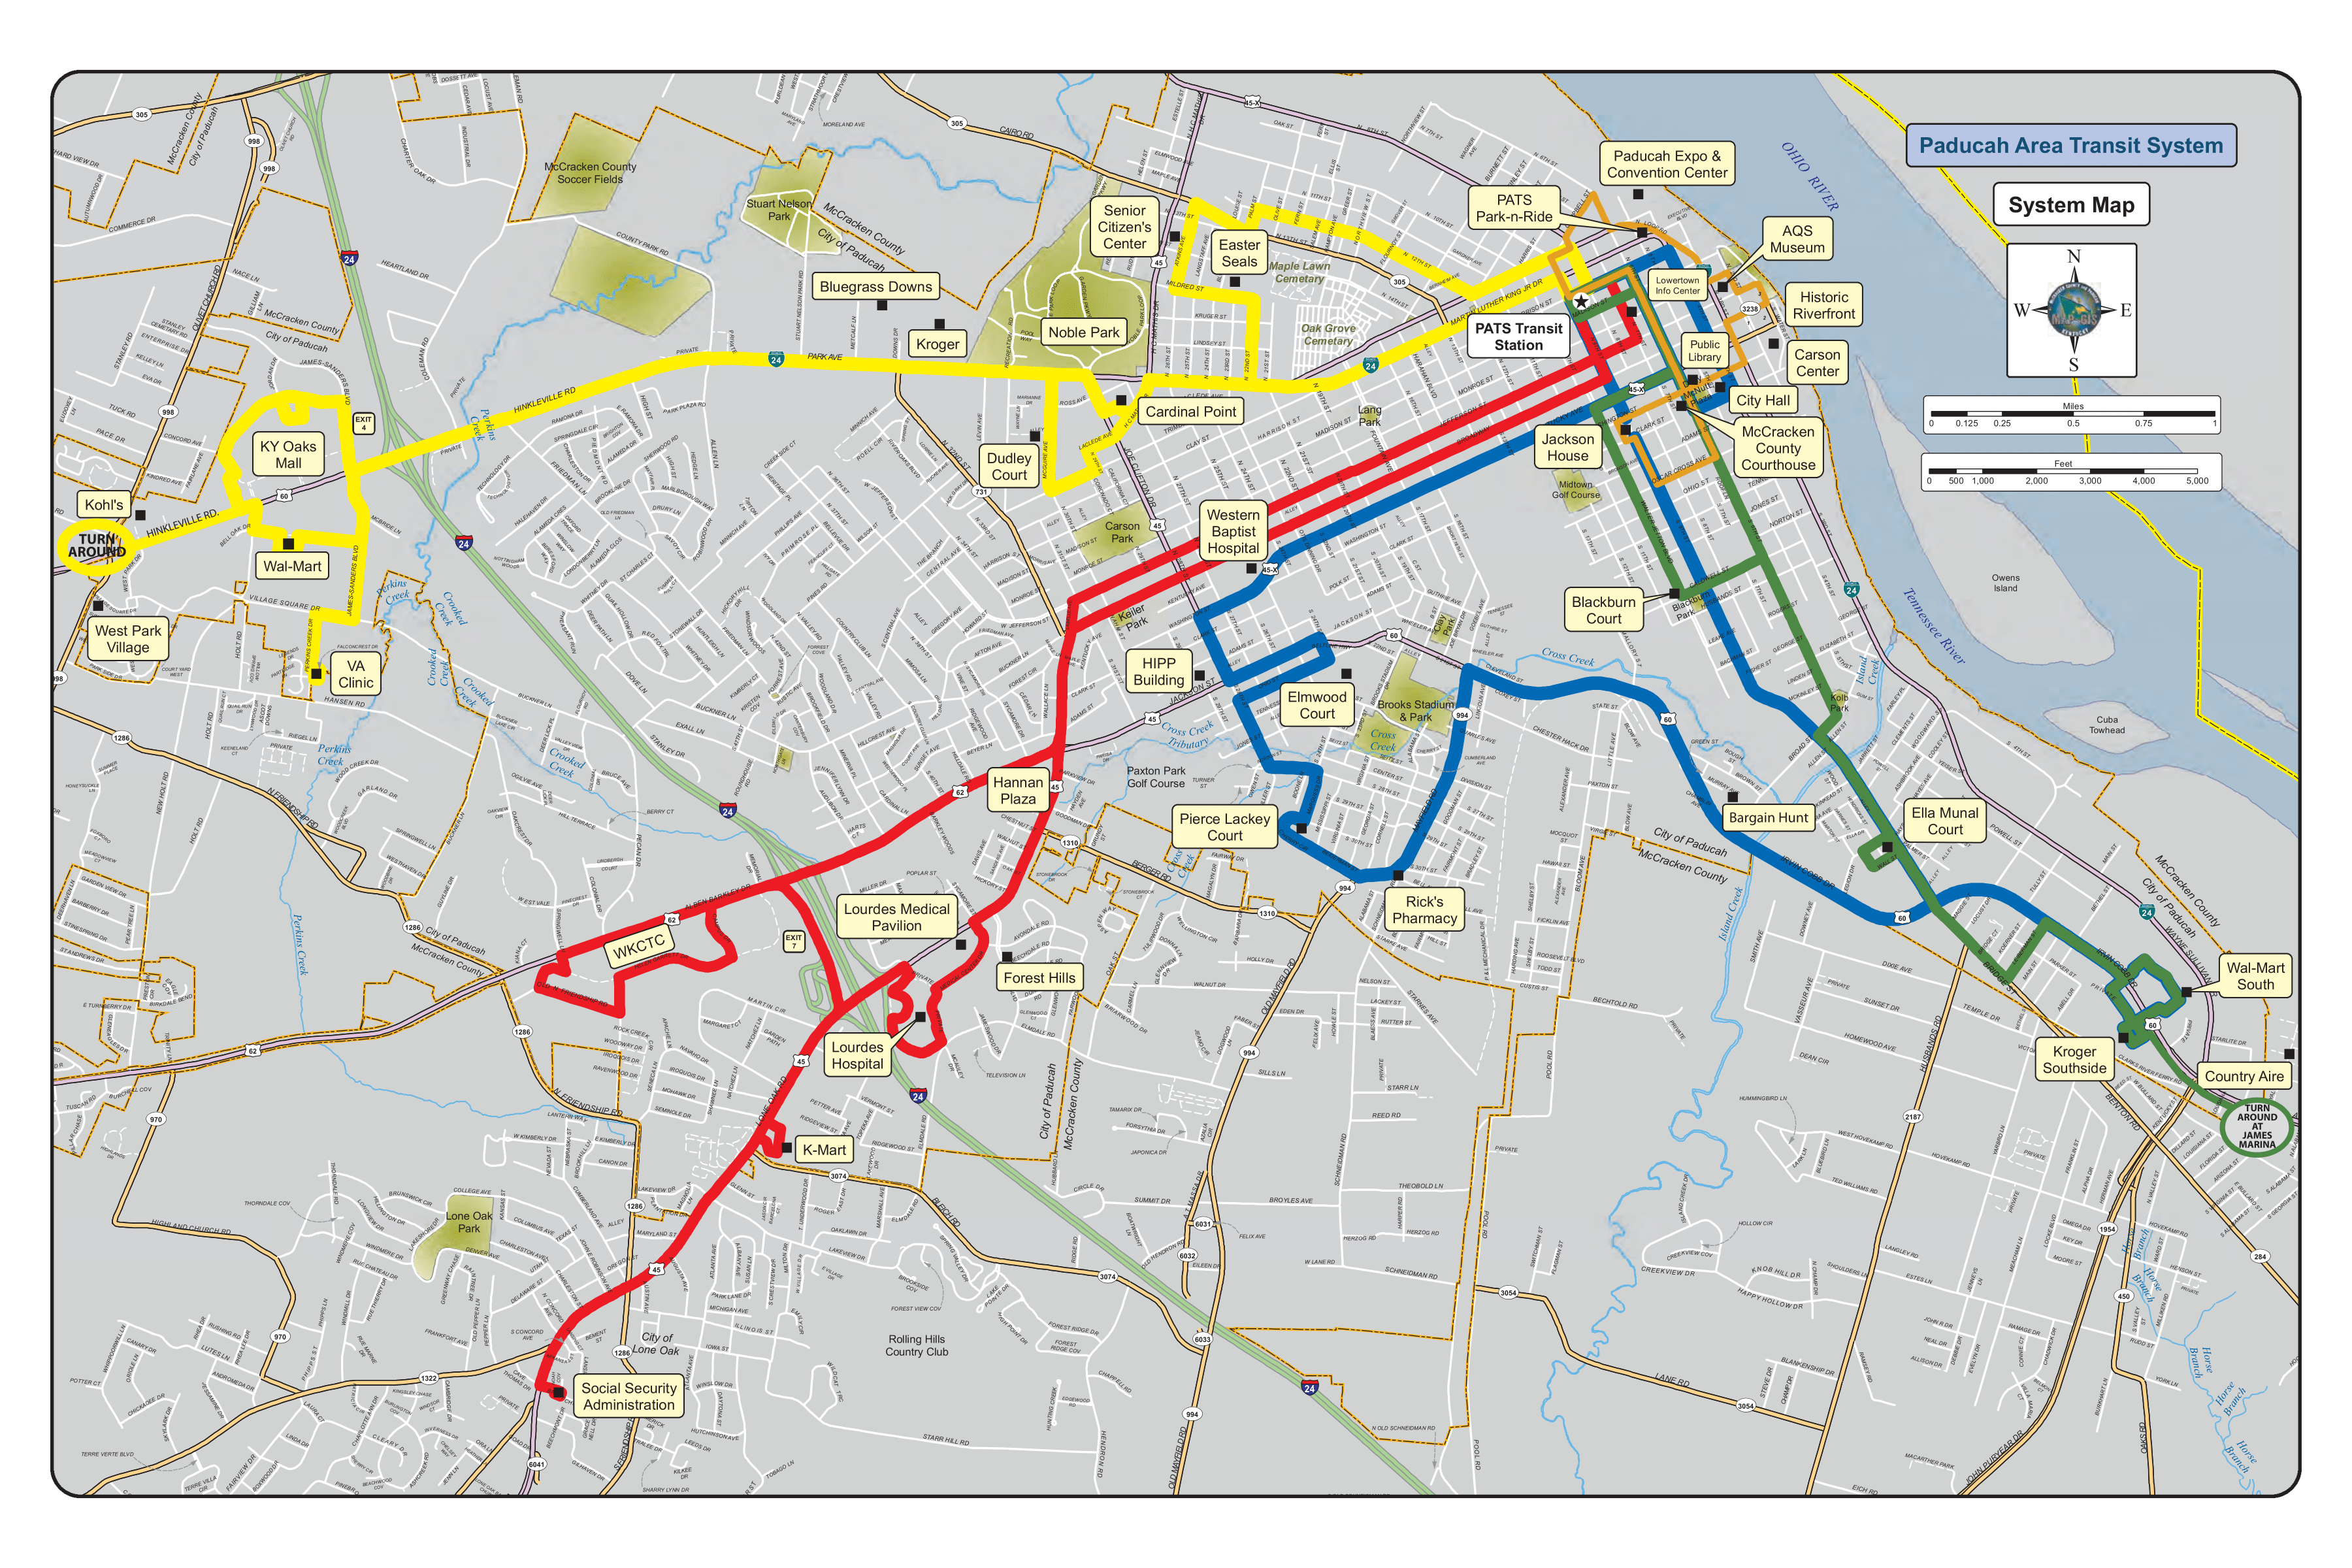 PATS-Full-Route-System